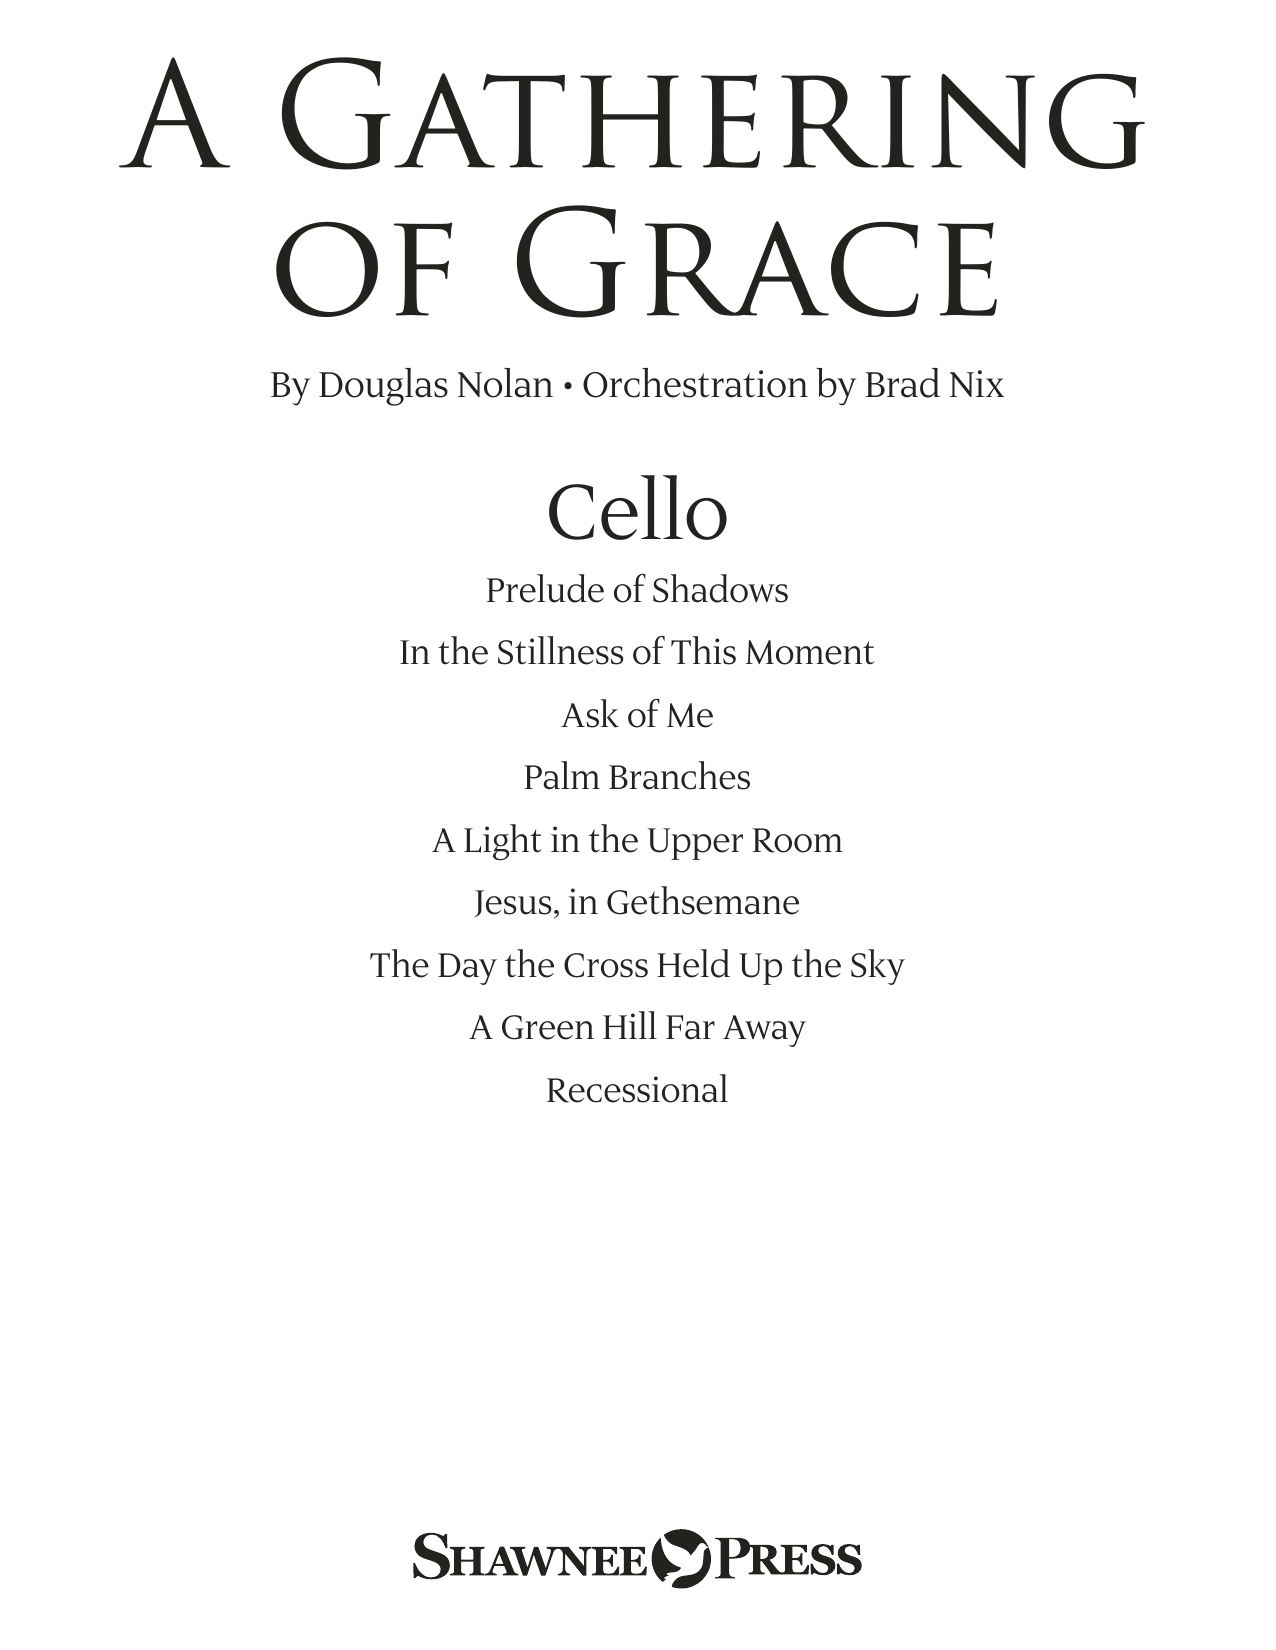 A Gathering of Grace - Cello Partituras Digitales